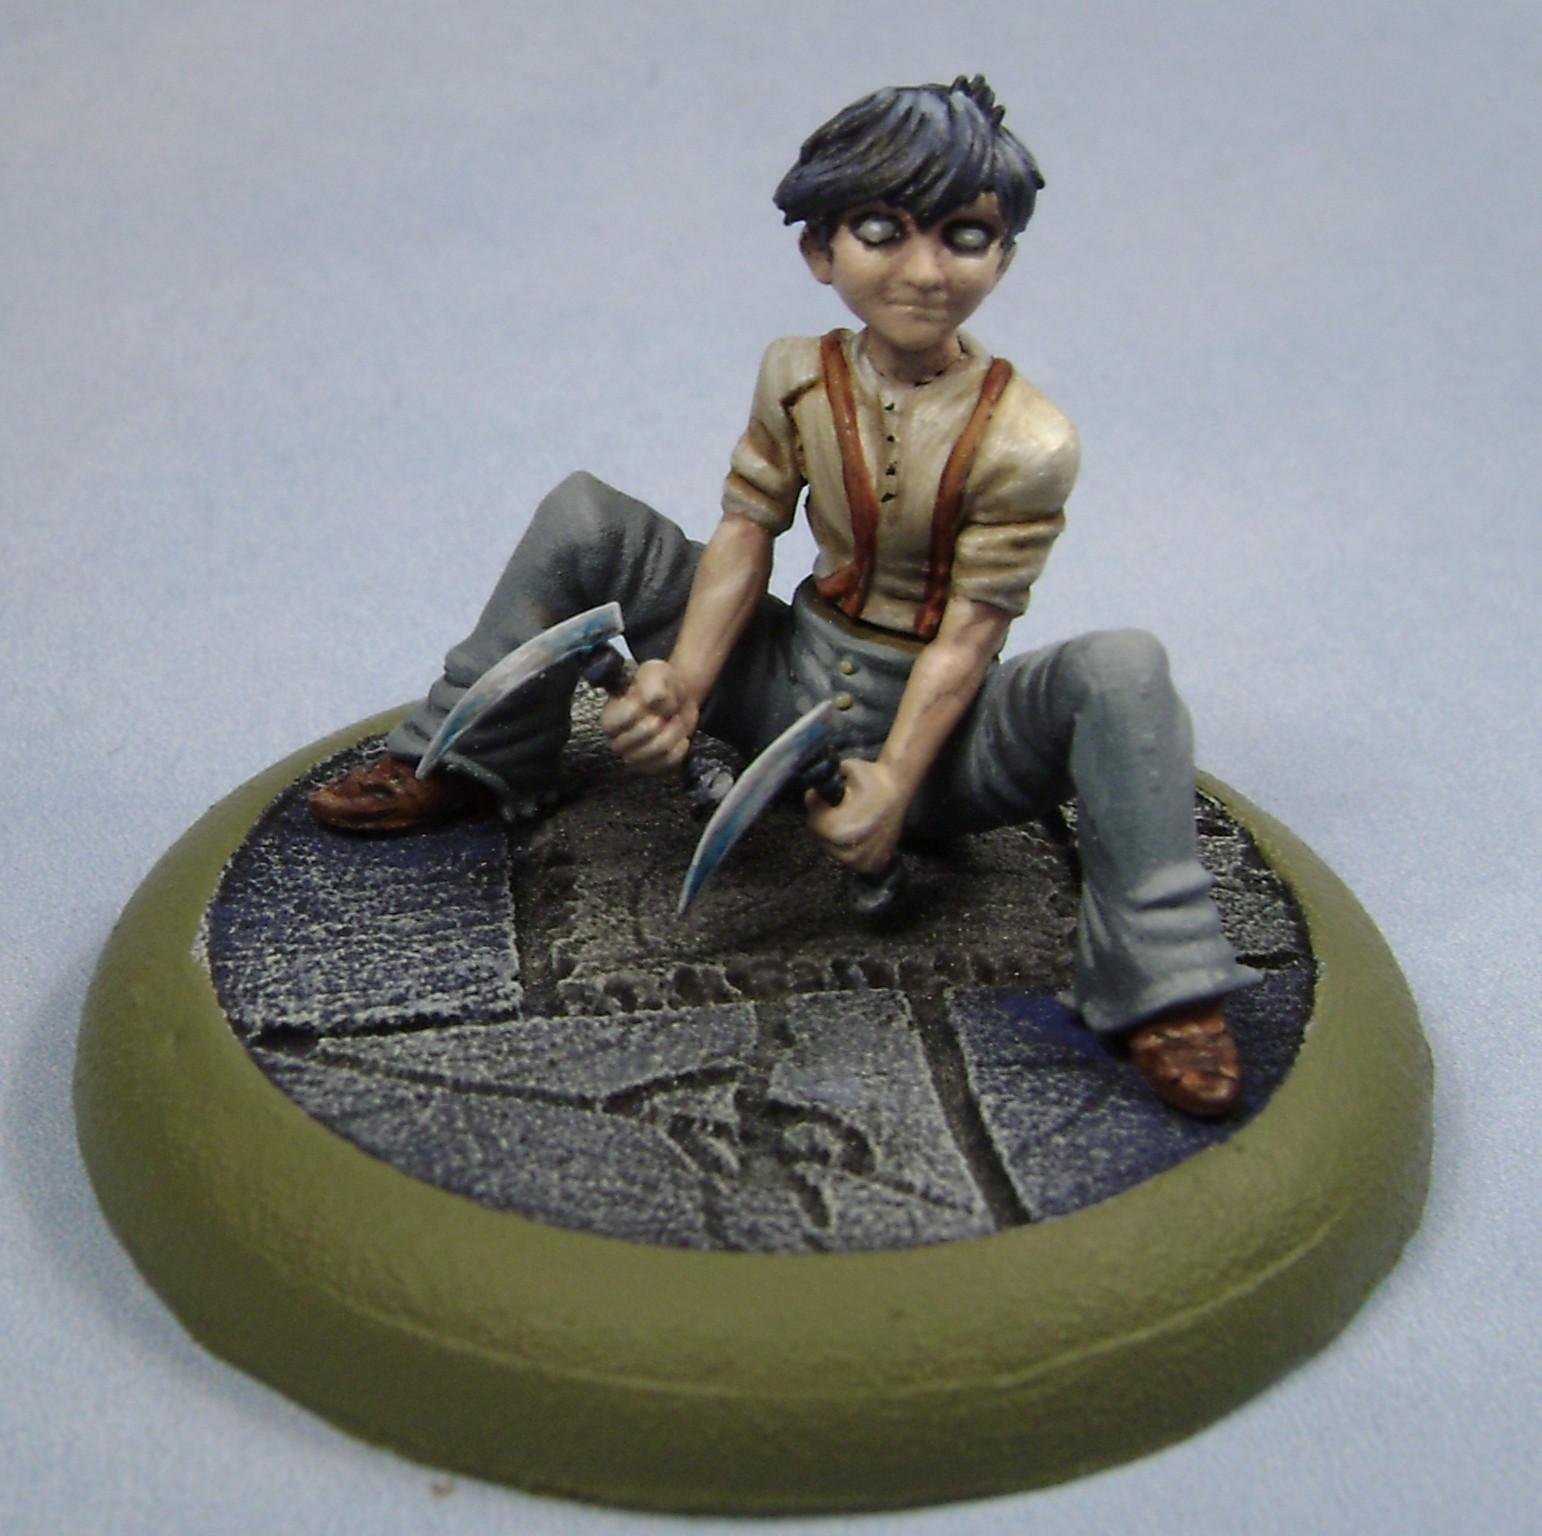 Malifaux, Malifaux Child, Miniatures, Models, Non-Metallic Metal, Outcasts, Painted, Totem